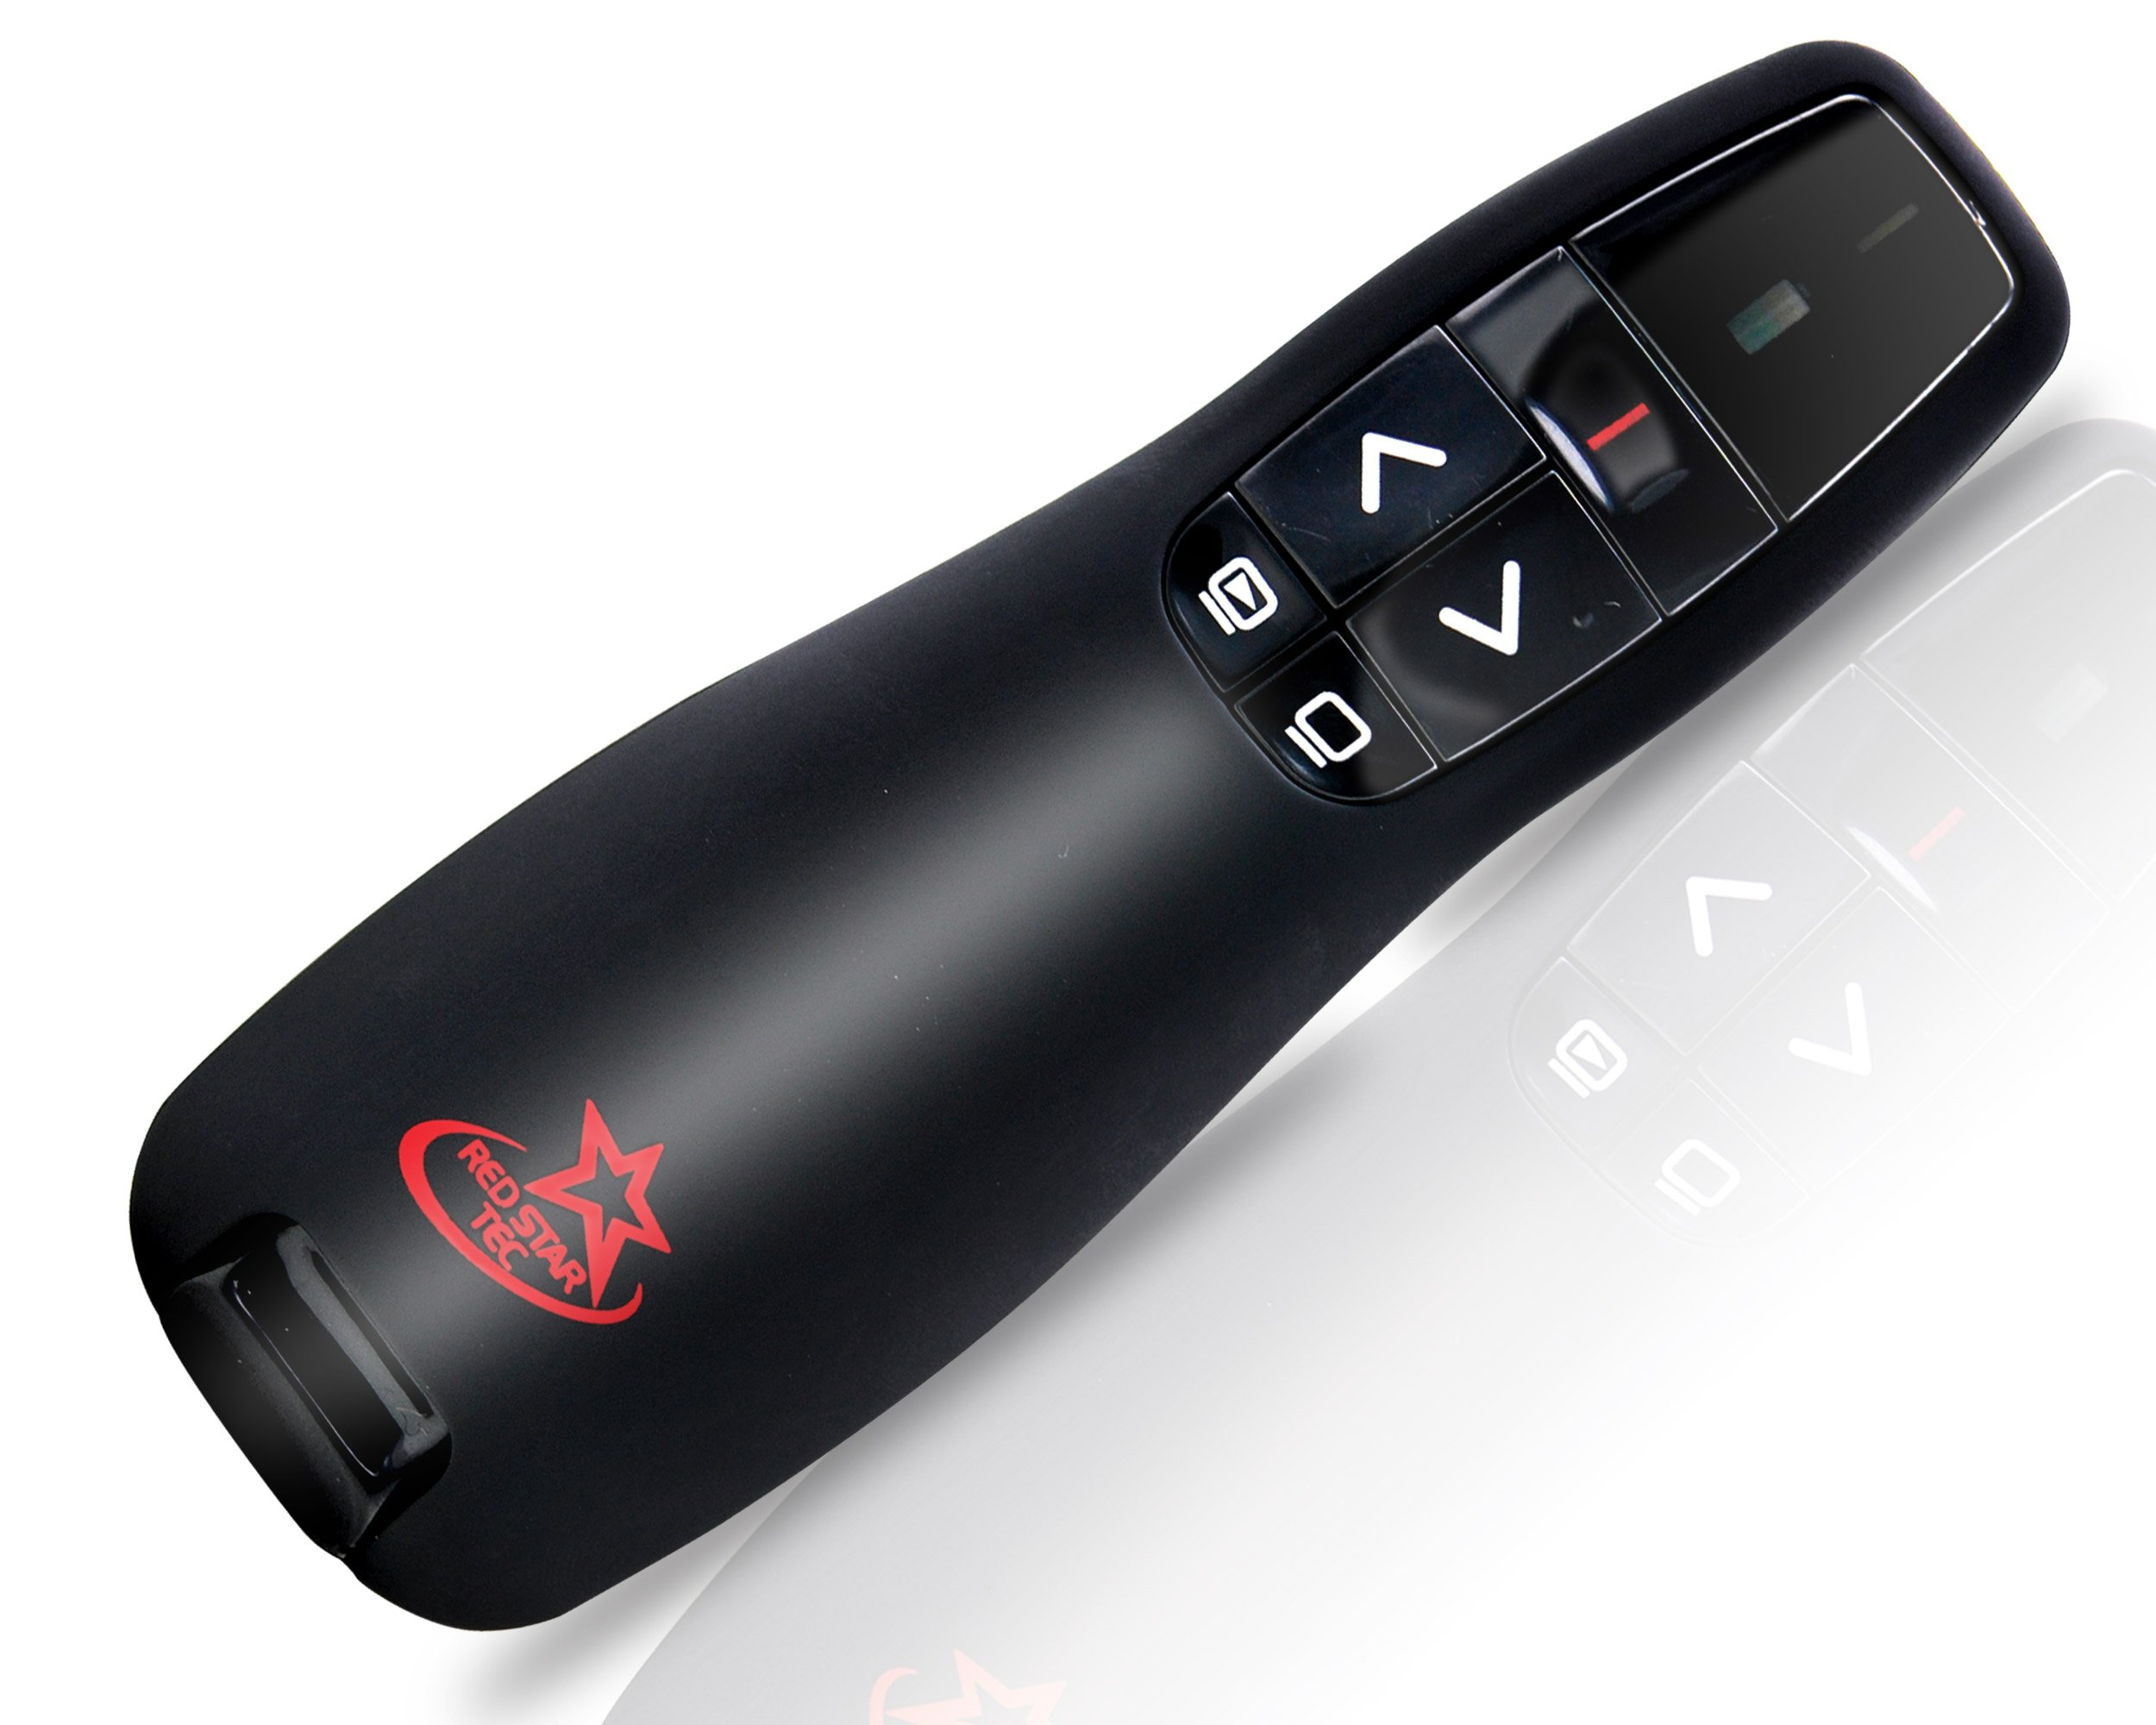 Red Star Tec Wireless Powerpoint and Keynote Presentation Remote Clicker PR-819 (Black, 1 Pack) by RED STAR TEC